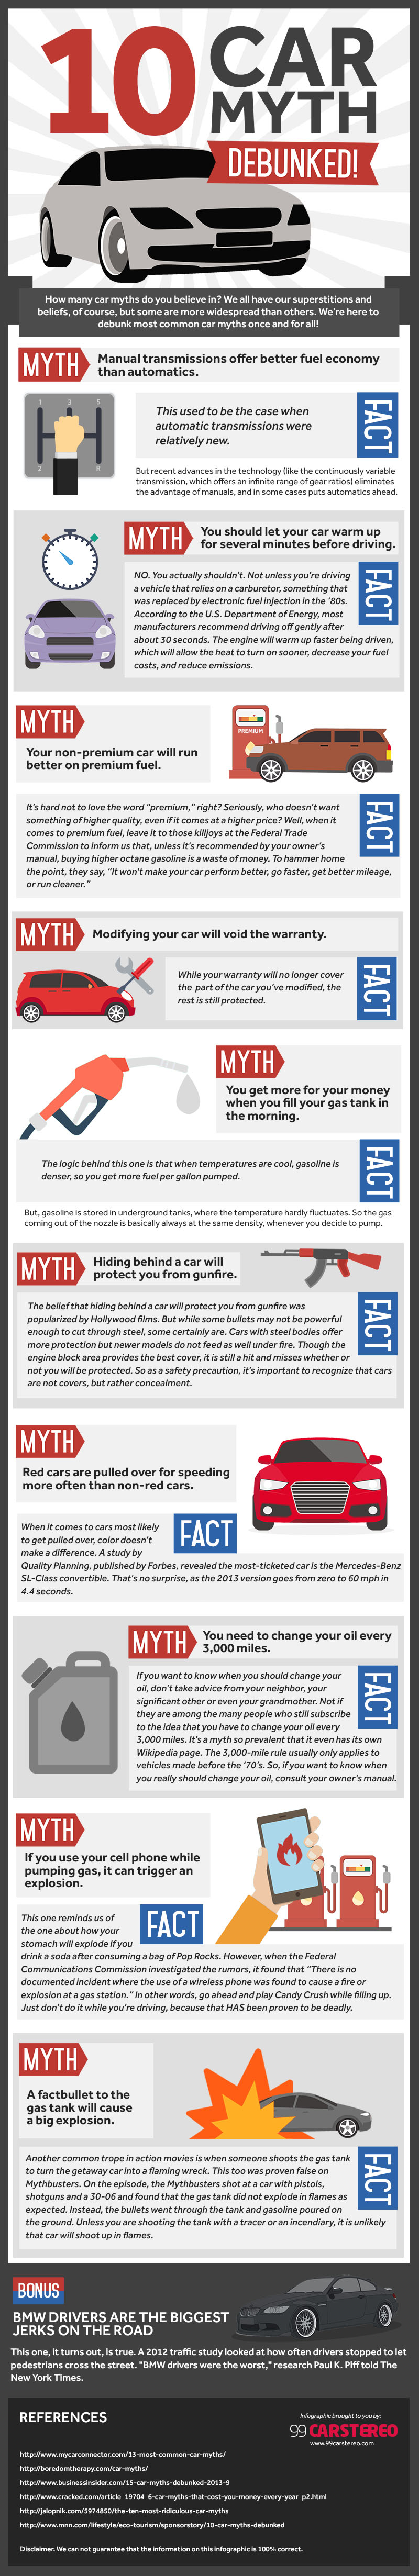 10 Car Myths Debunked!